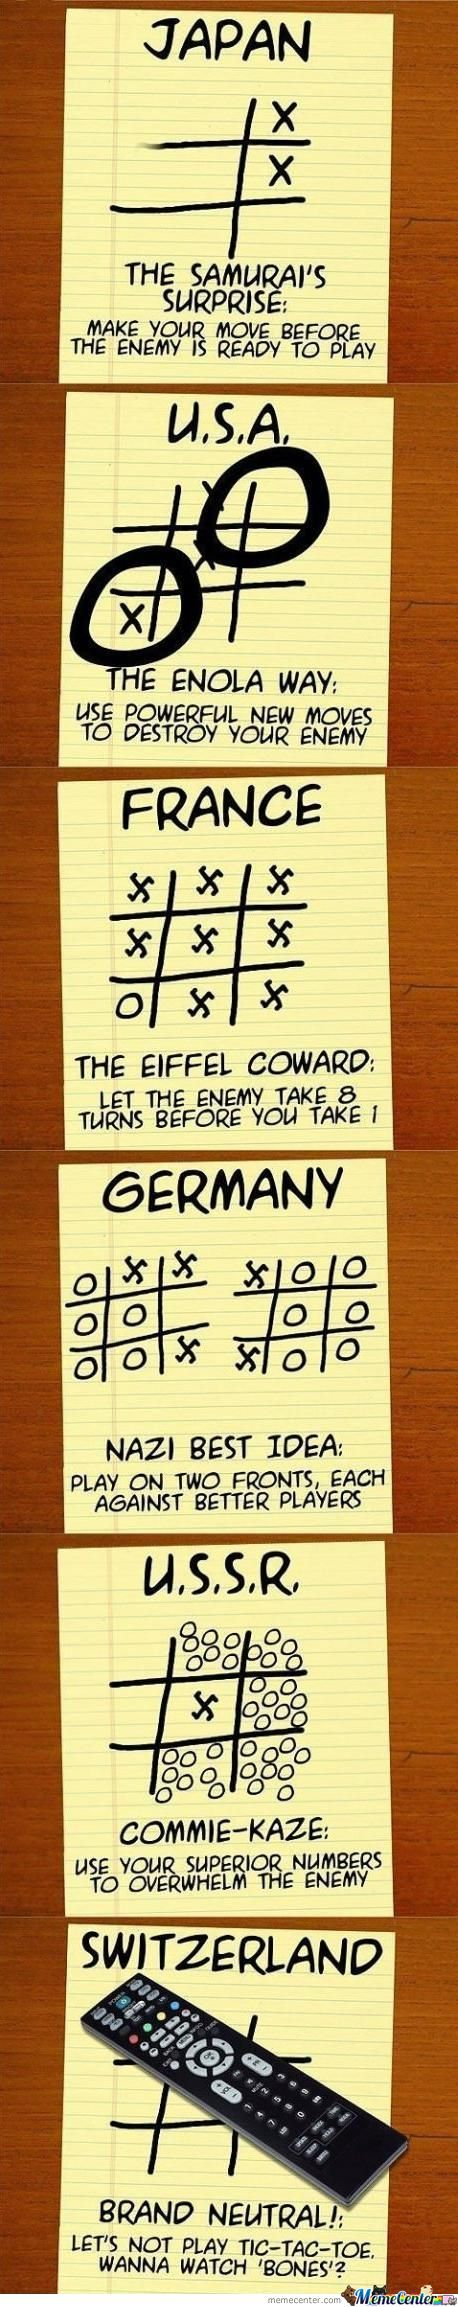 Tic Tac Toe by Countries